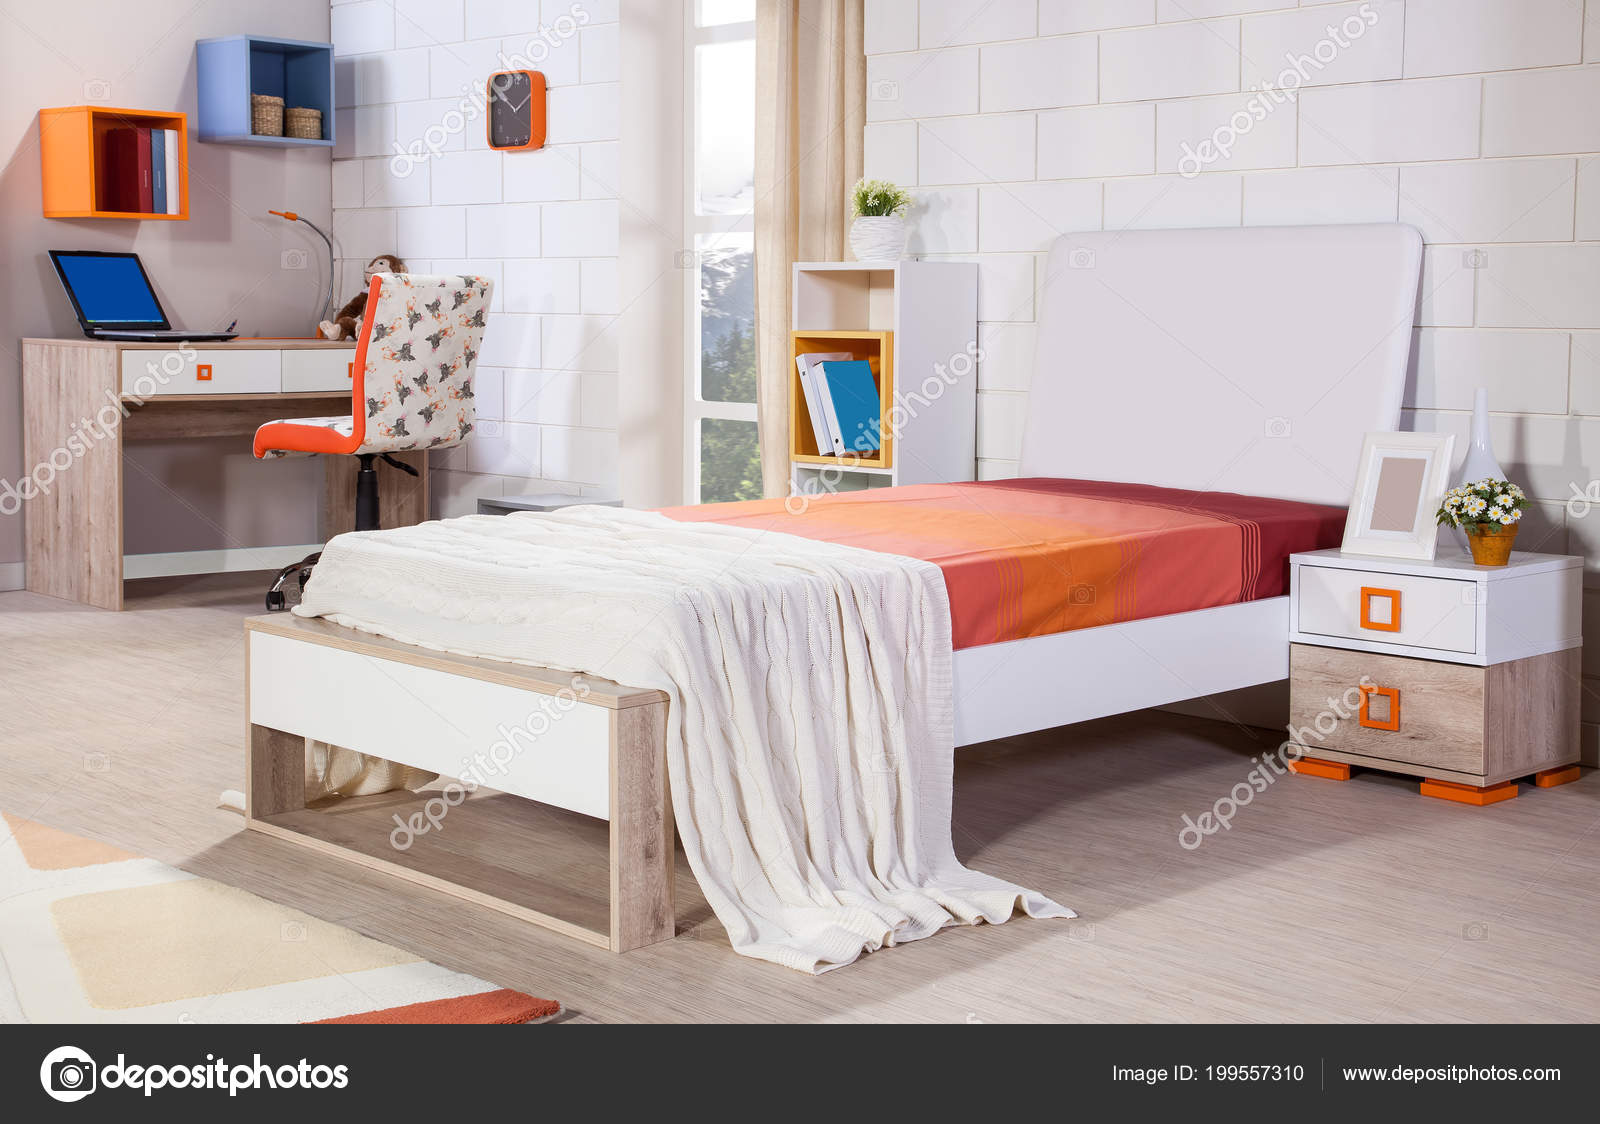 Children Room Interior Modern Style Stock Photo Saaras 199557310